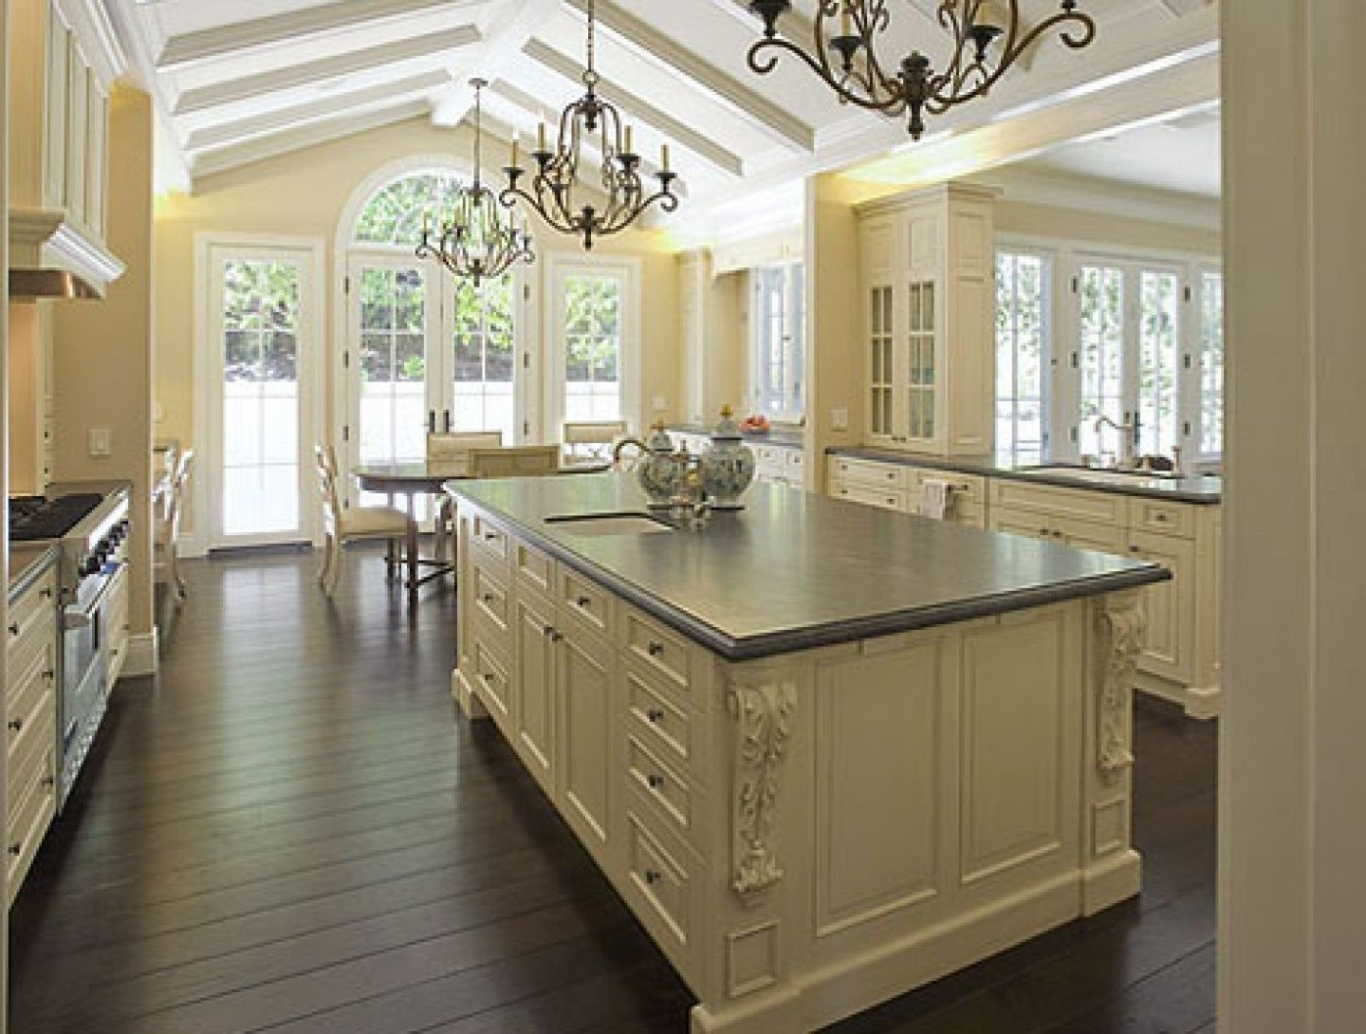 Country French Kitchens With Popular French Country Chandeliers For Kitchen (View 20 of 20)